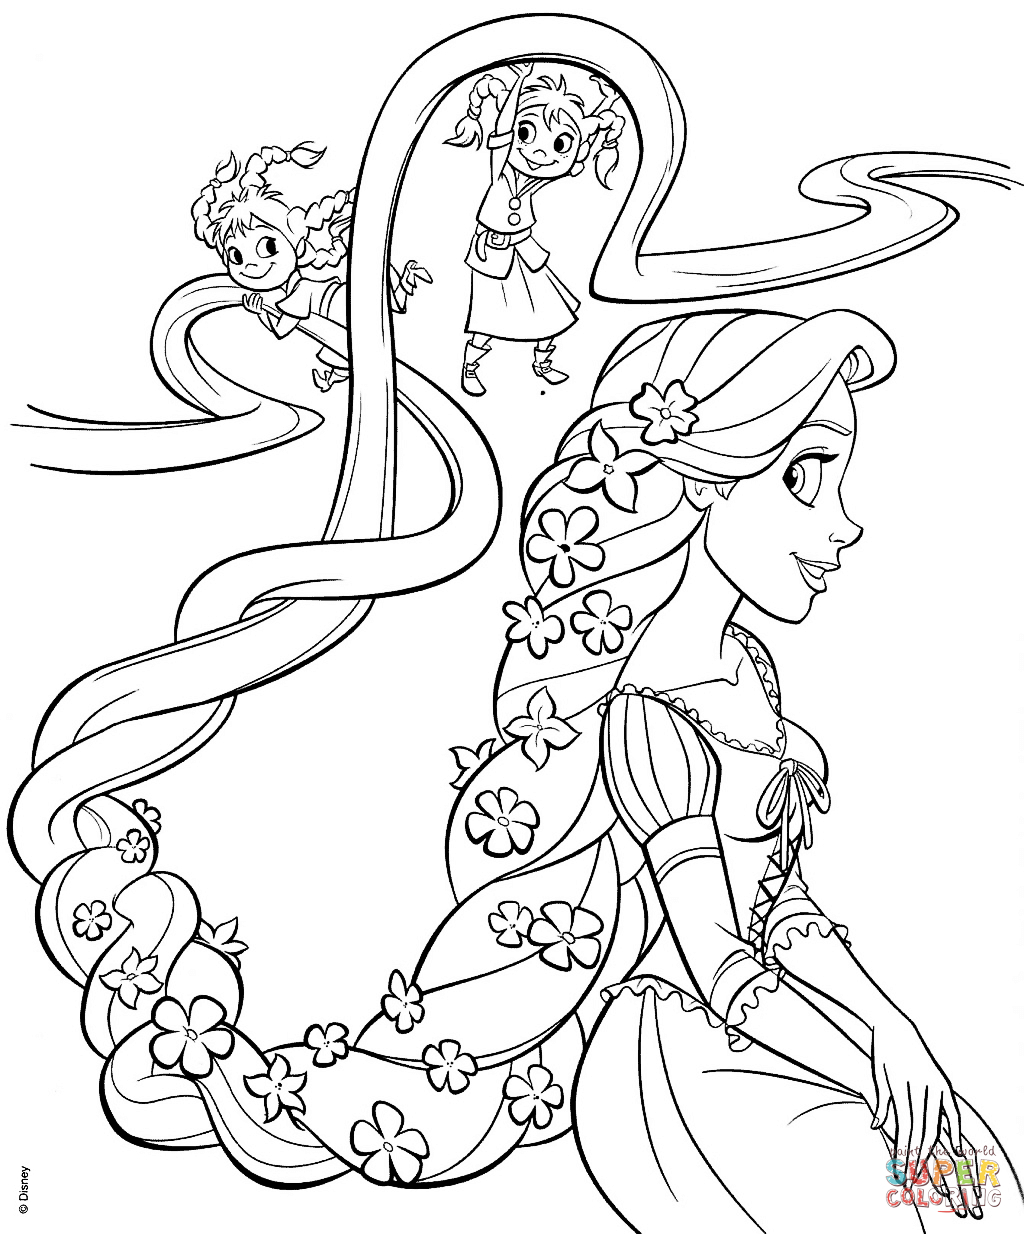 Rapunzel And Four Sisters Coloring Page | Free Printable Coloring Pages - Free Printable Tangled